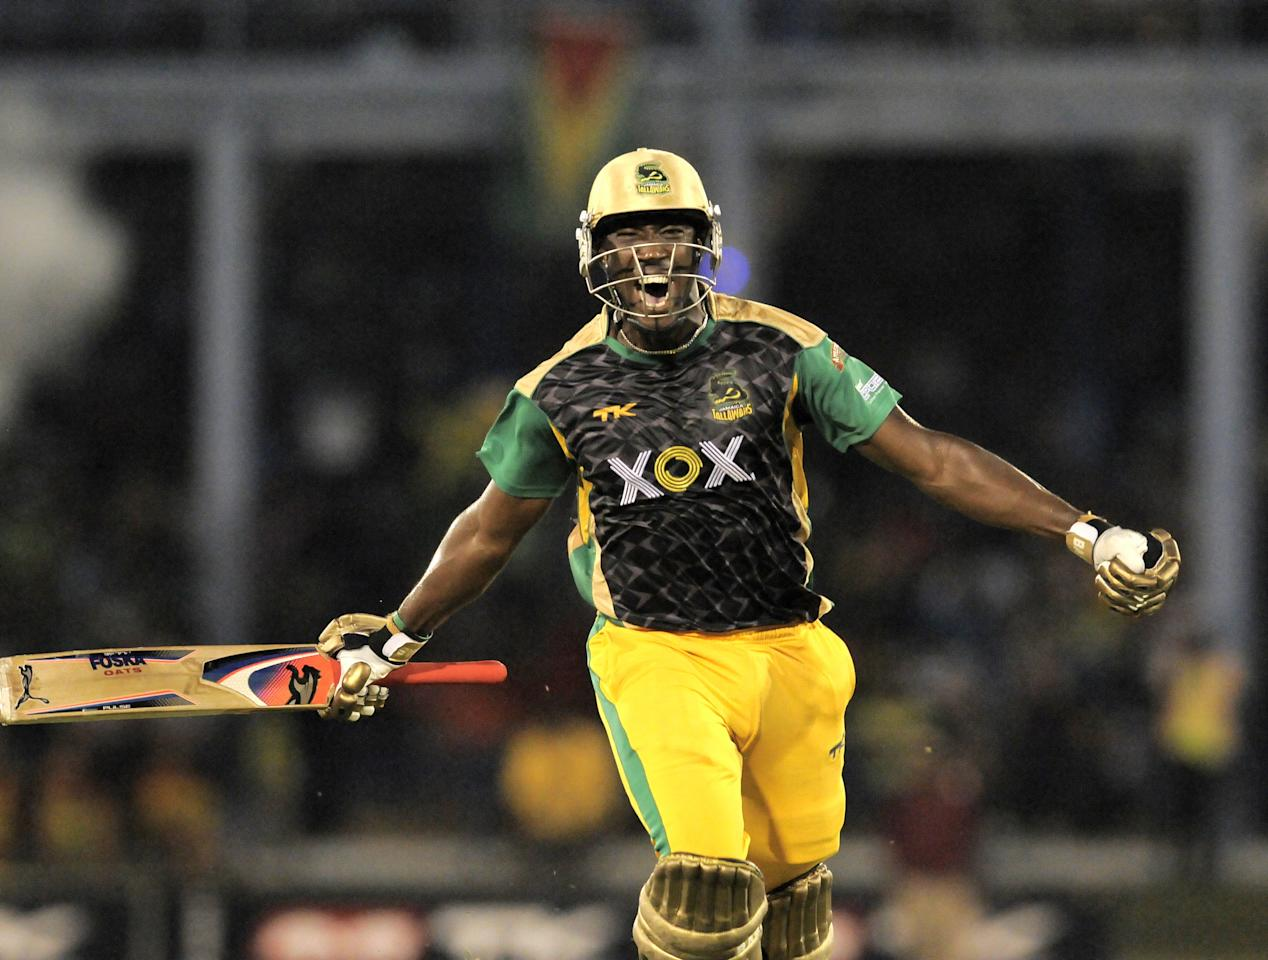 PORT OF SPAIN, TRINIDAD AND TOBAGO - AUGUST 24:  Andre Russell of Jamaica Tallawahs celebrates victory against Guyana Amazon Warriors during the Final of the Caribbean Premier League between Guyana Amazon Warriors v Jamaica Tallawahs at Queens Park Oval on August 24, 2013 in Port of Spain, Trinidad and Tobago. (Photo by Randy Brooks/Getty Images Latin America for CPL)